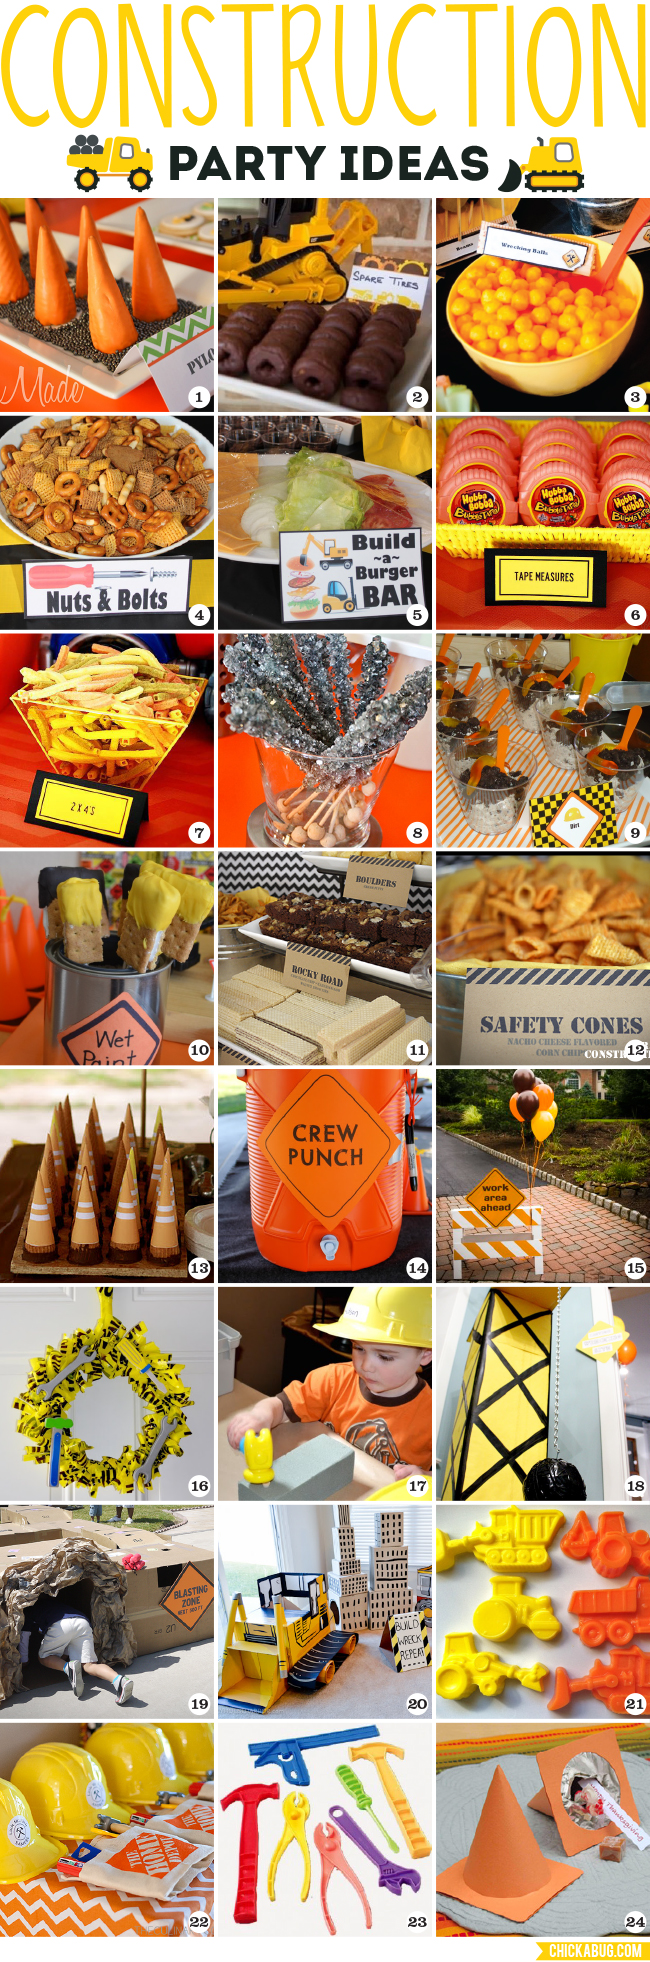 Construction Party Ideas Food Decor Games And Favors Chickabug